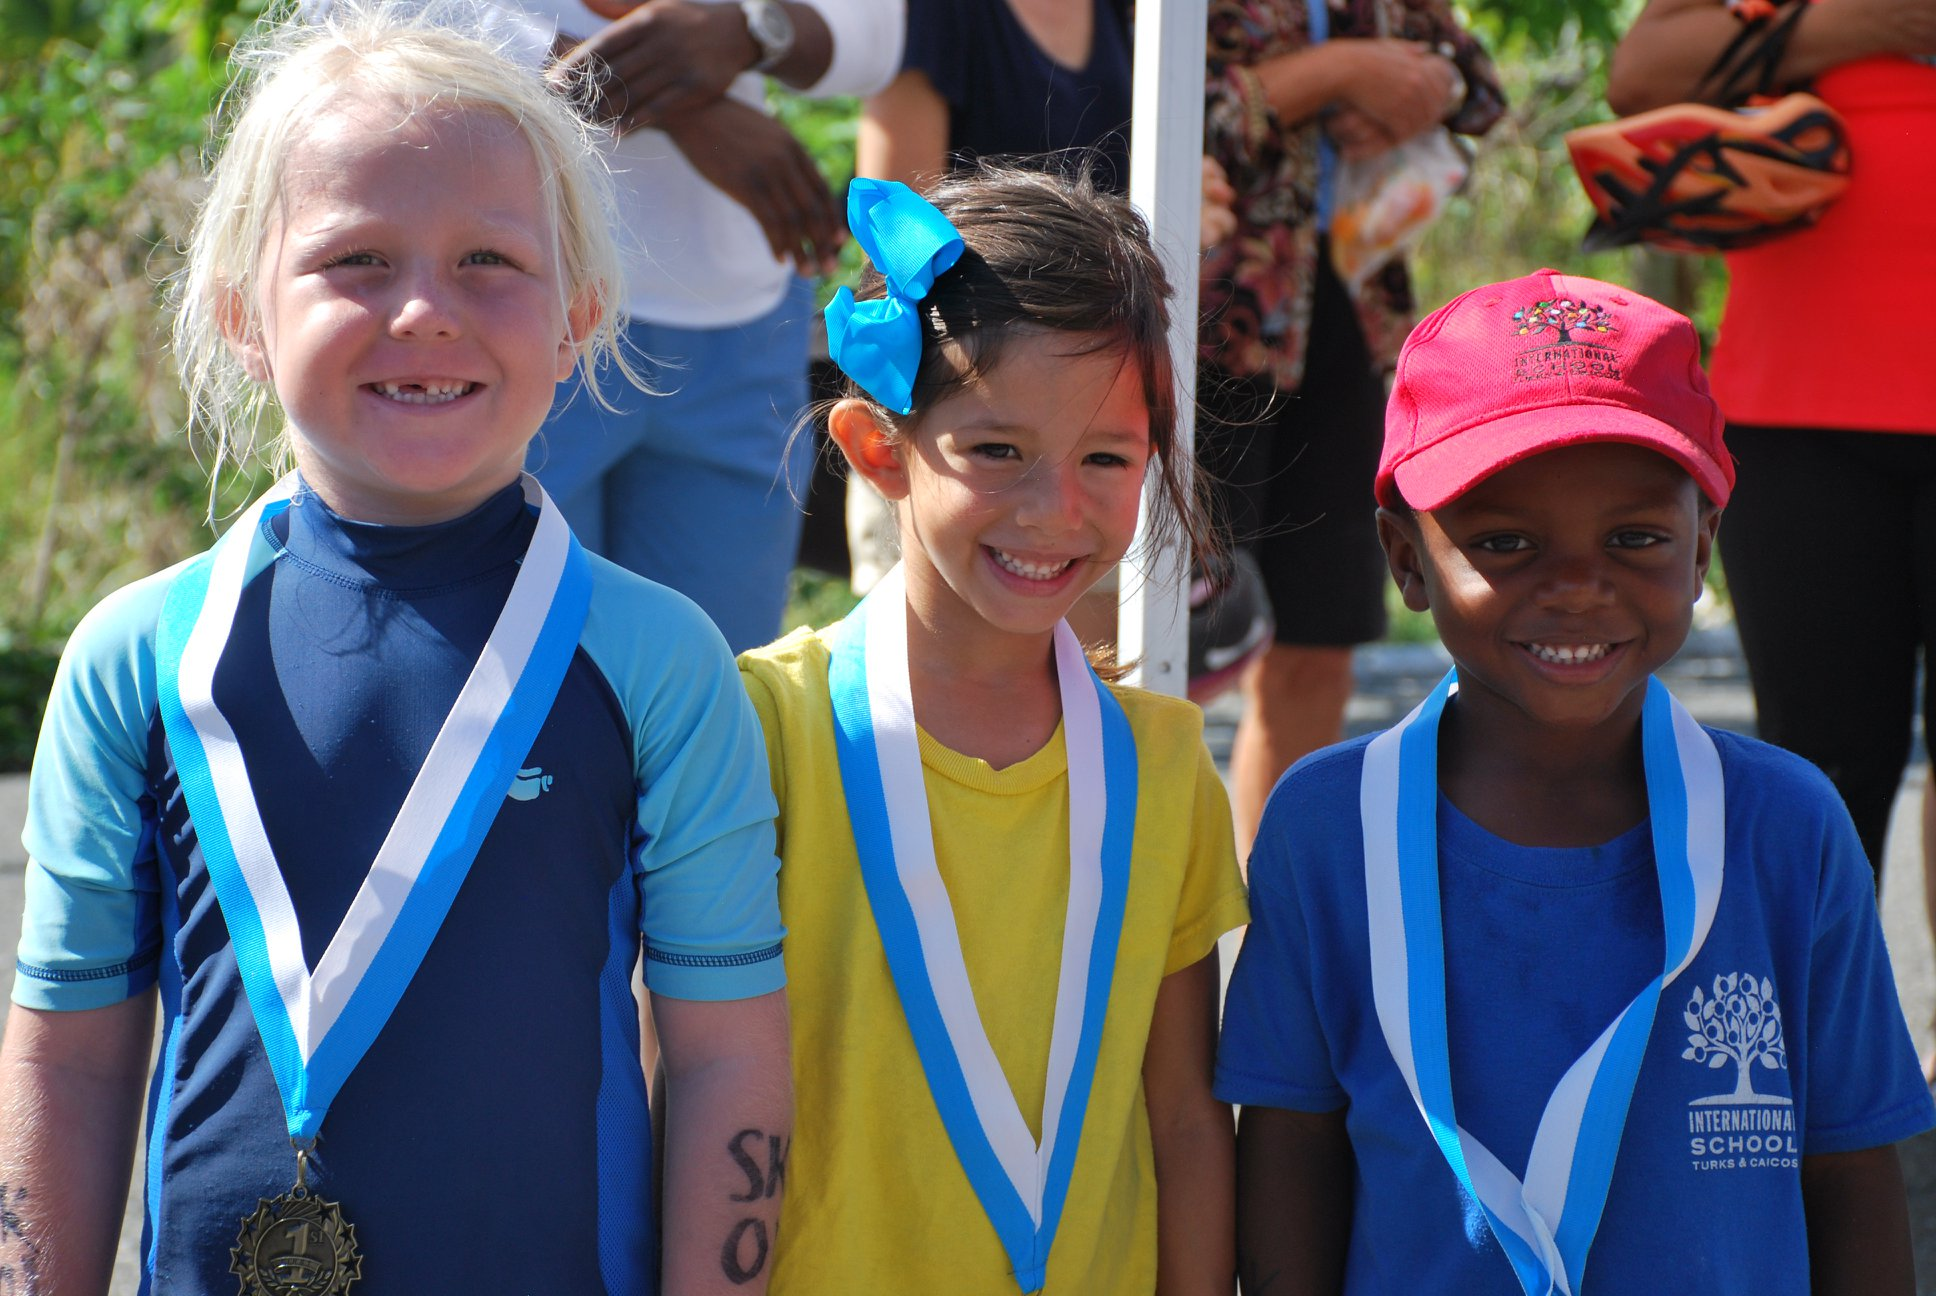 International School Mini Triathlon